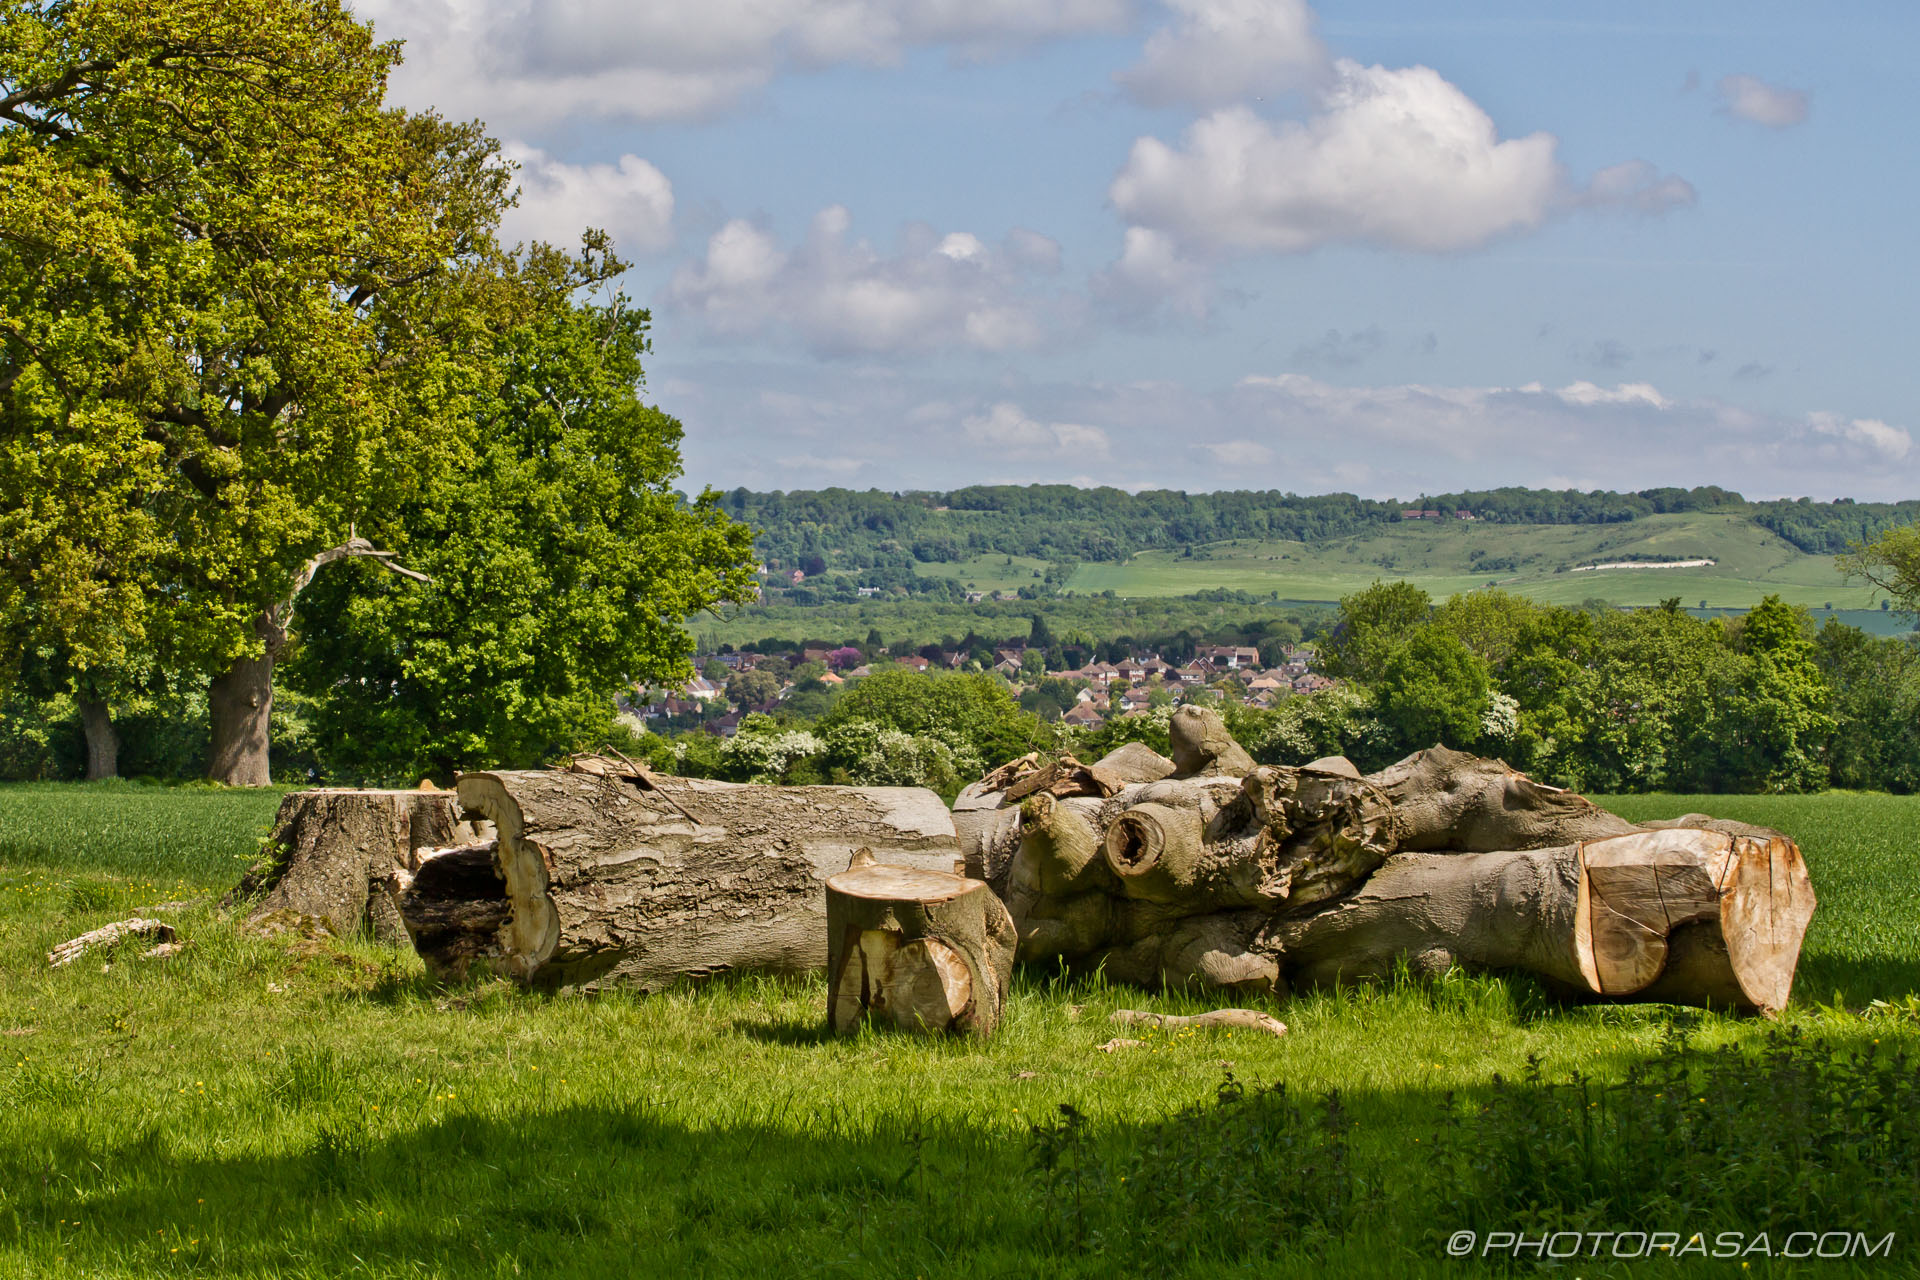 http://photorasa.com/countryside-otham/tree-lumber-in-otham/